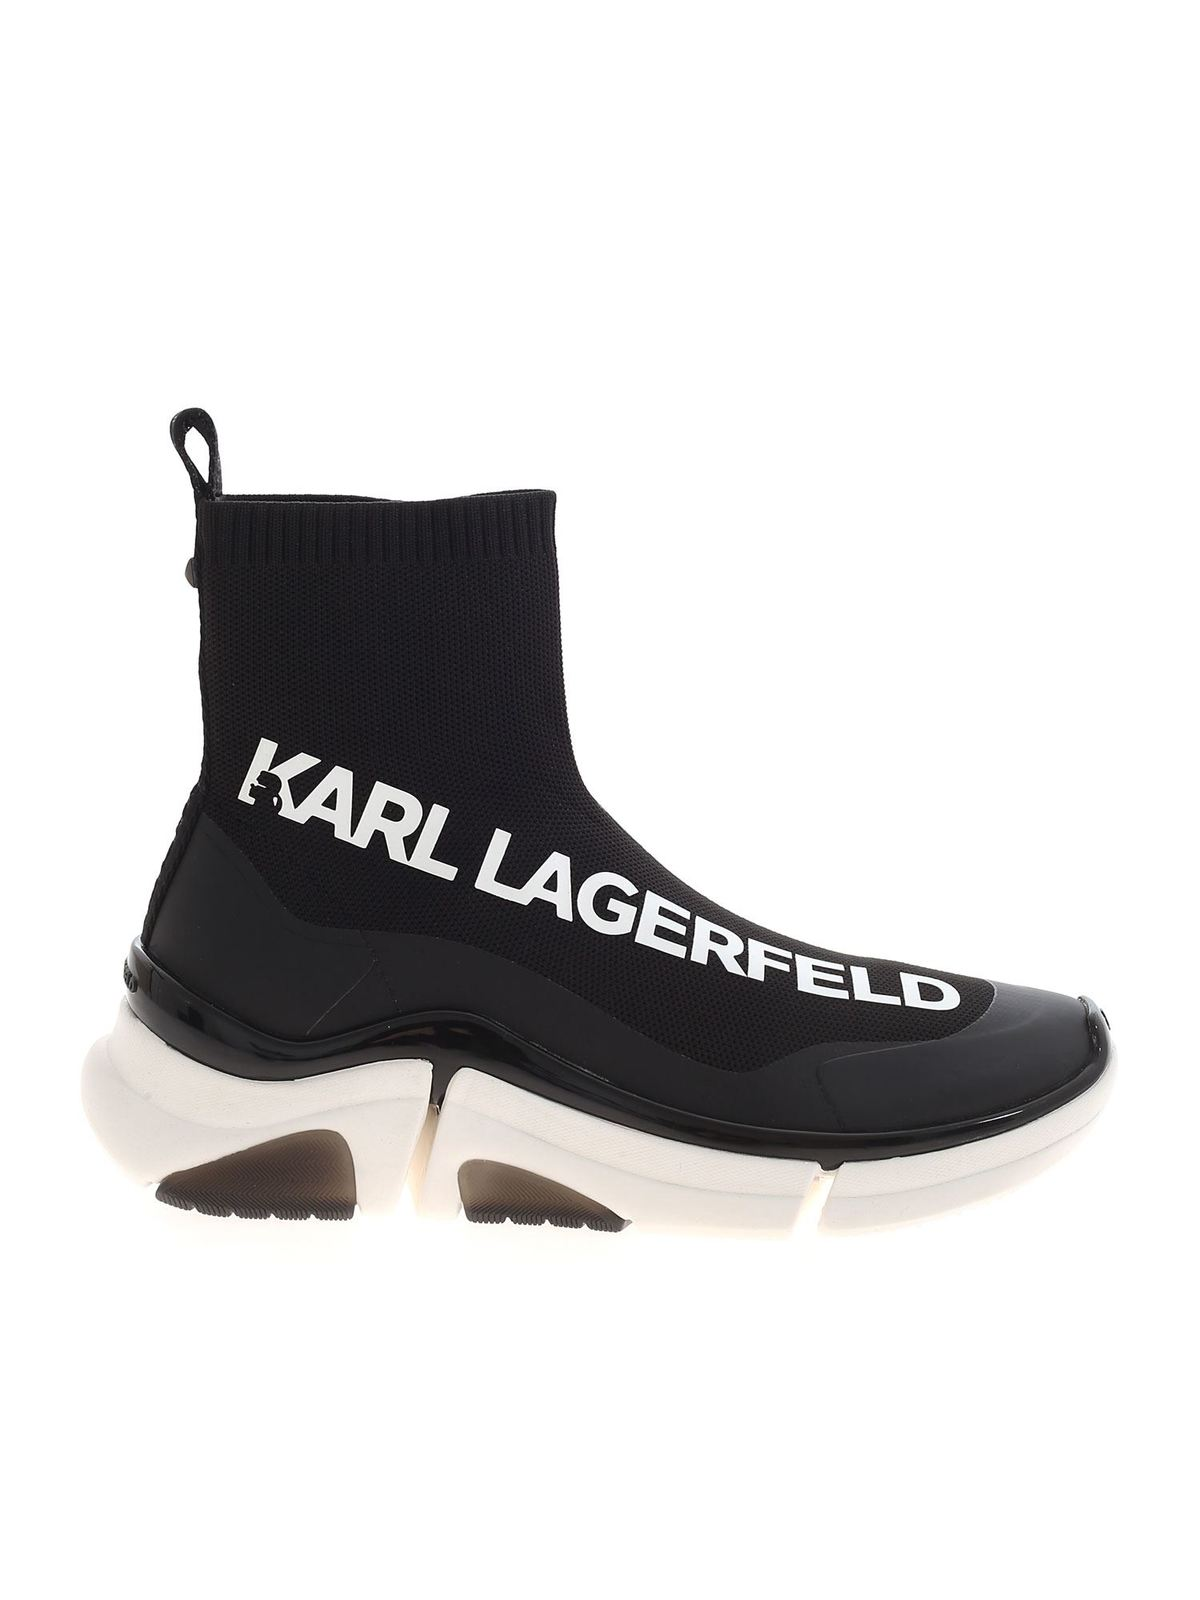 Karl Lagerfeld VENTURE SNEAKERS IN BLACK